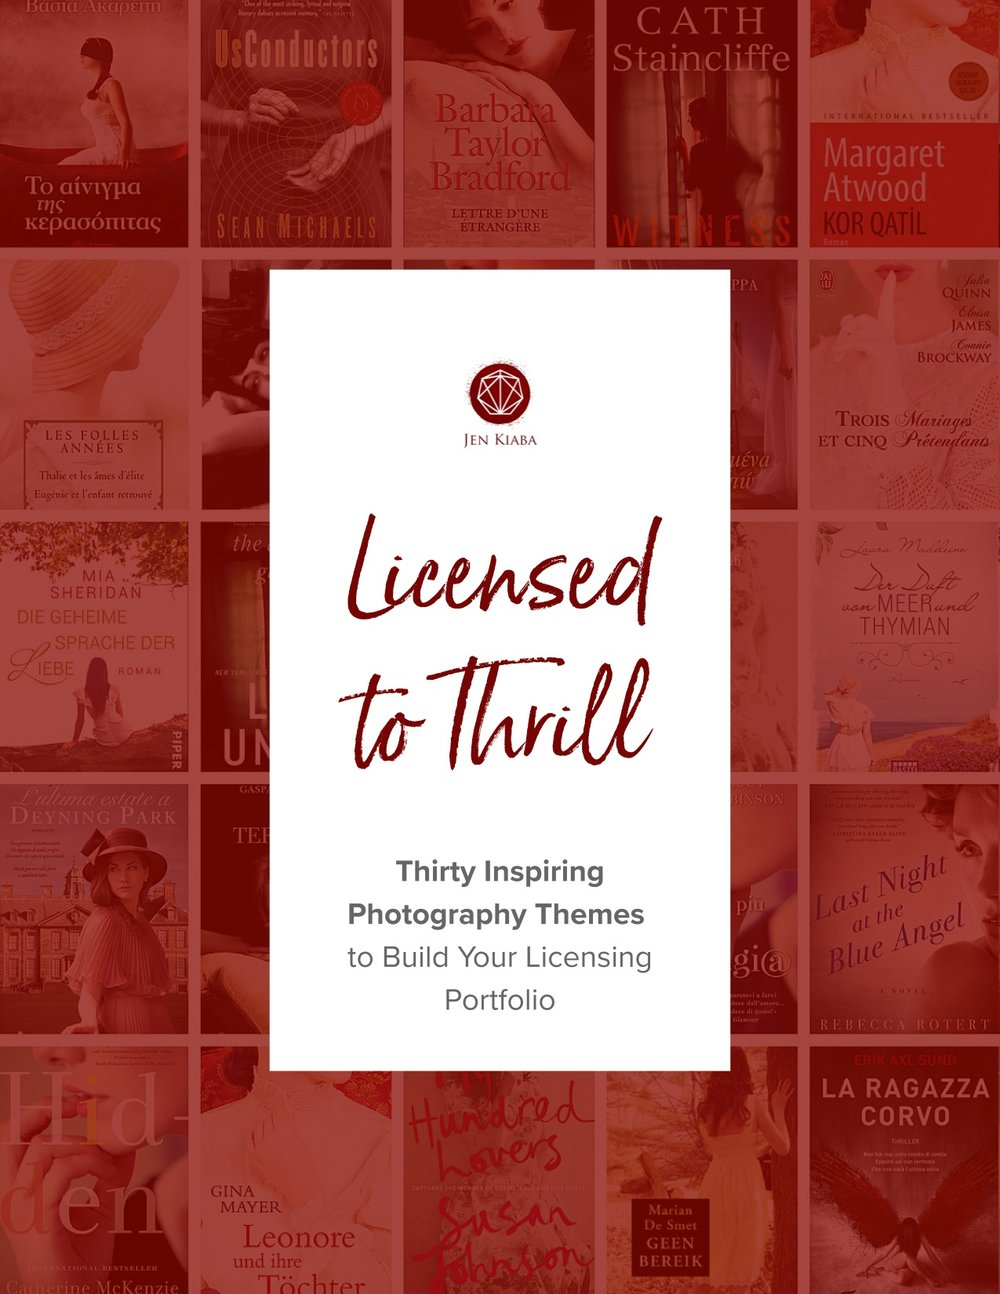 Licensed to Thrill - Thirty Inspiring Photography Themes to Help Build Your Photography Licensing Portfolio